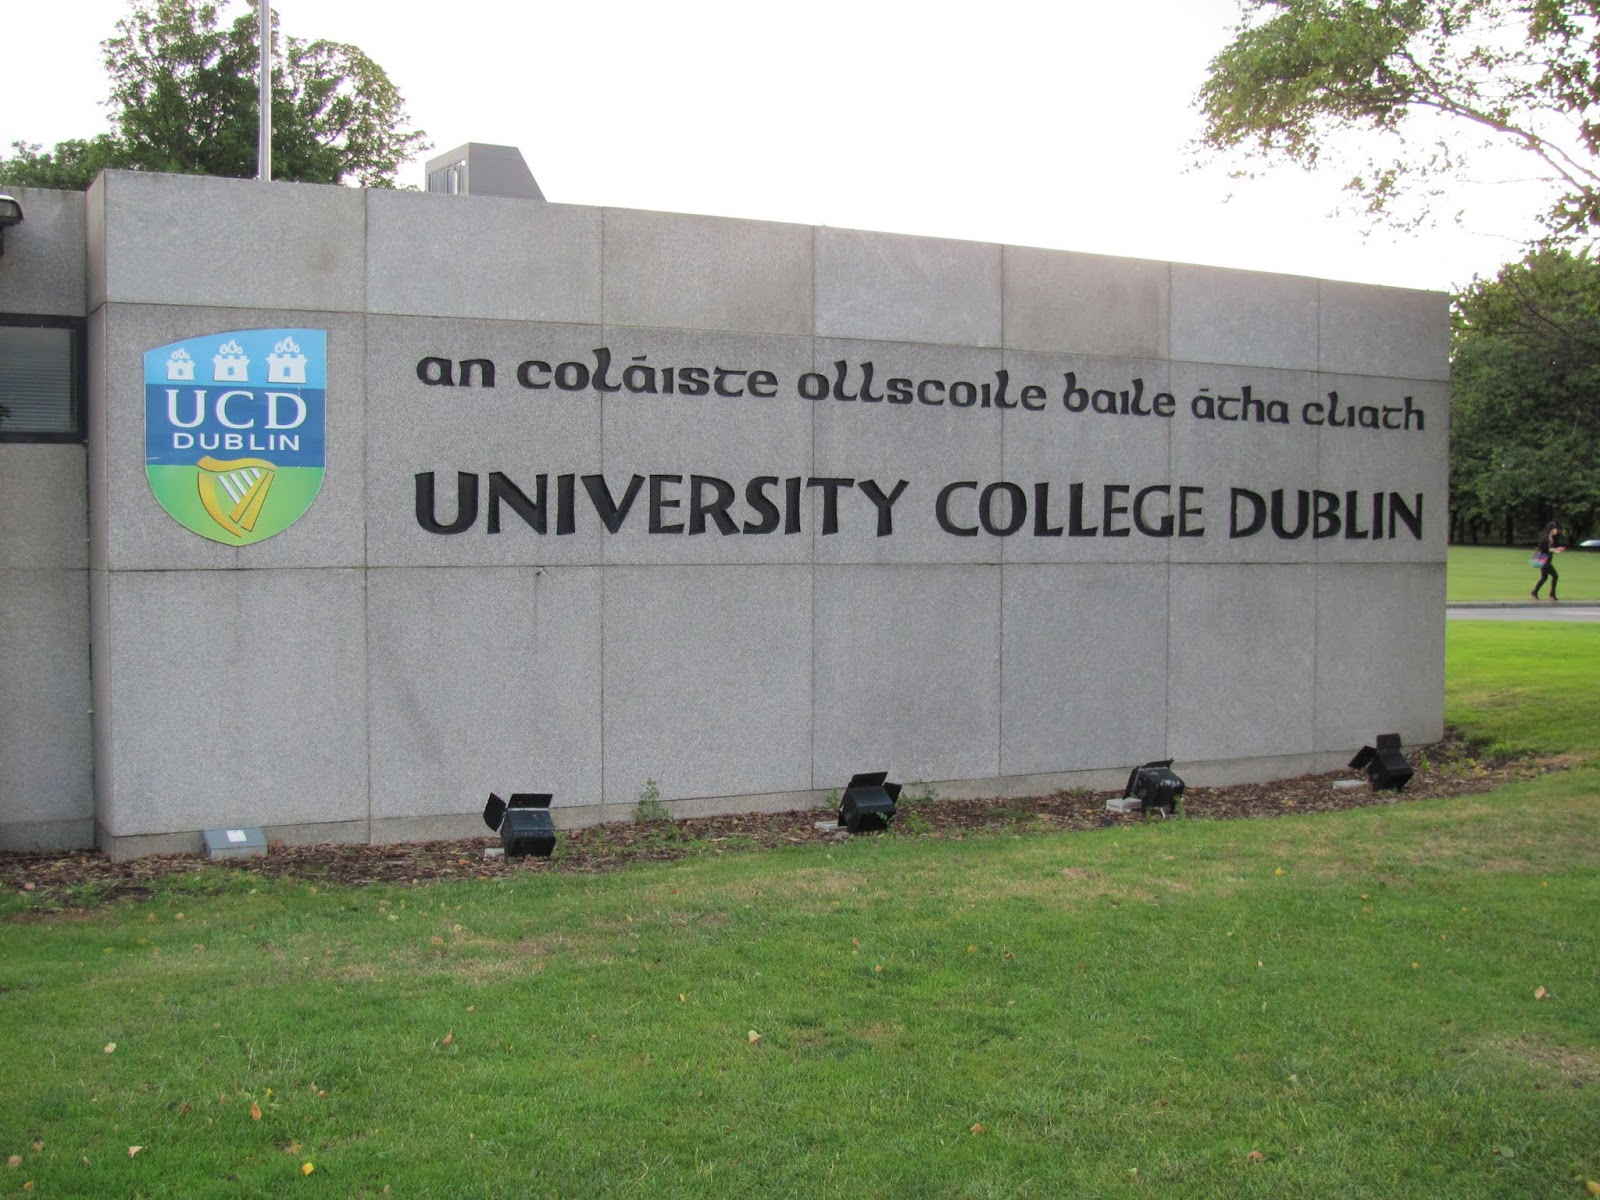 Welcome sign in Irish and English to UCD, Dublin, Ireland